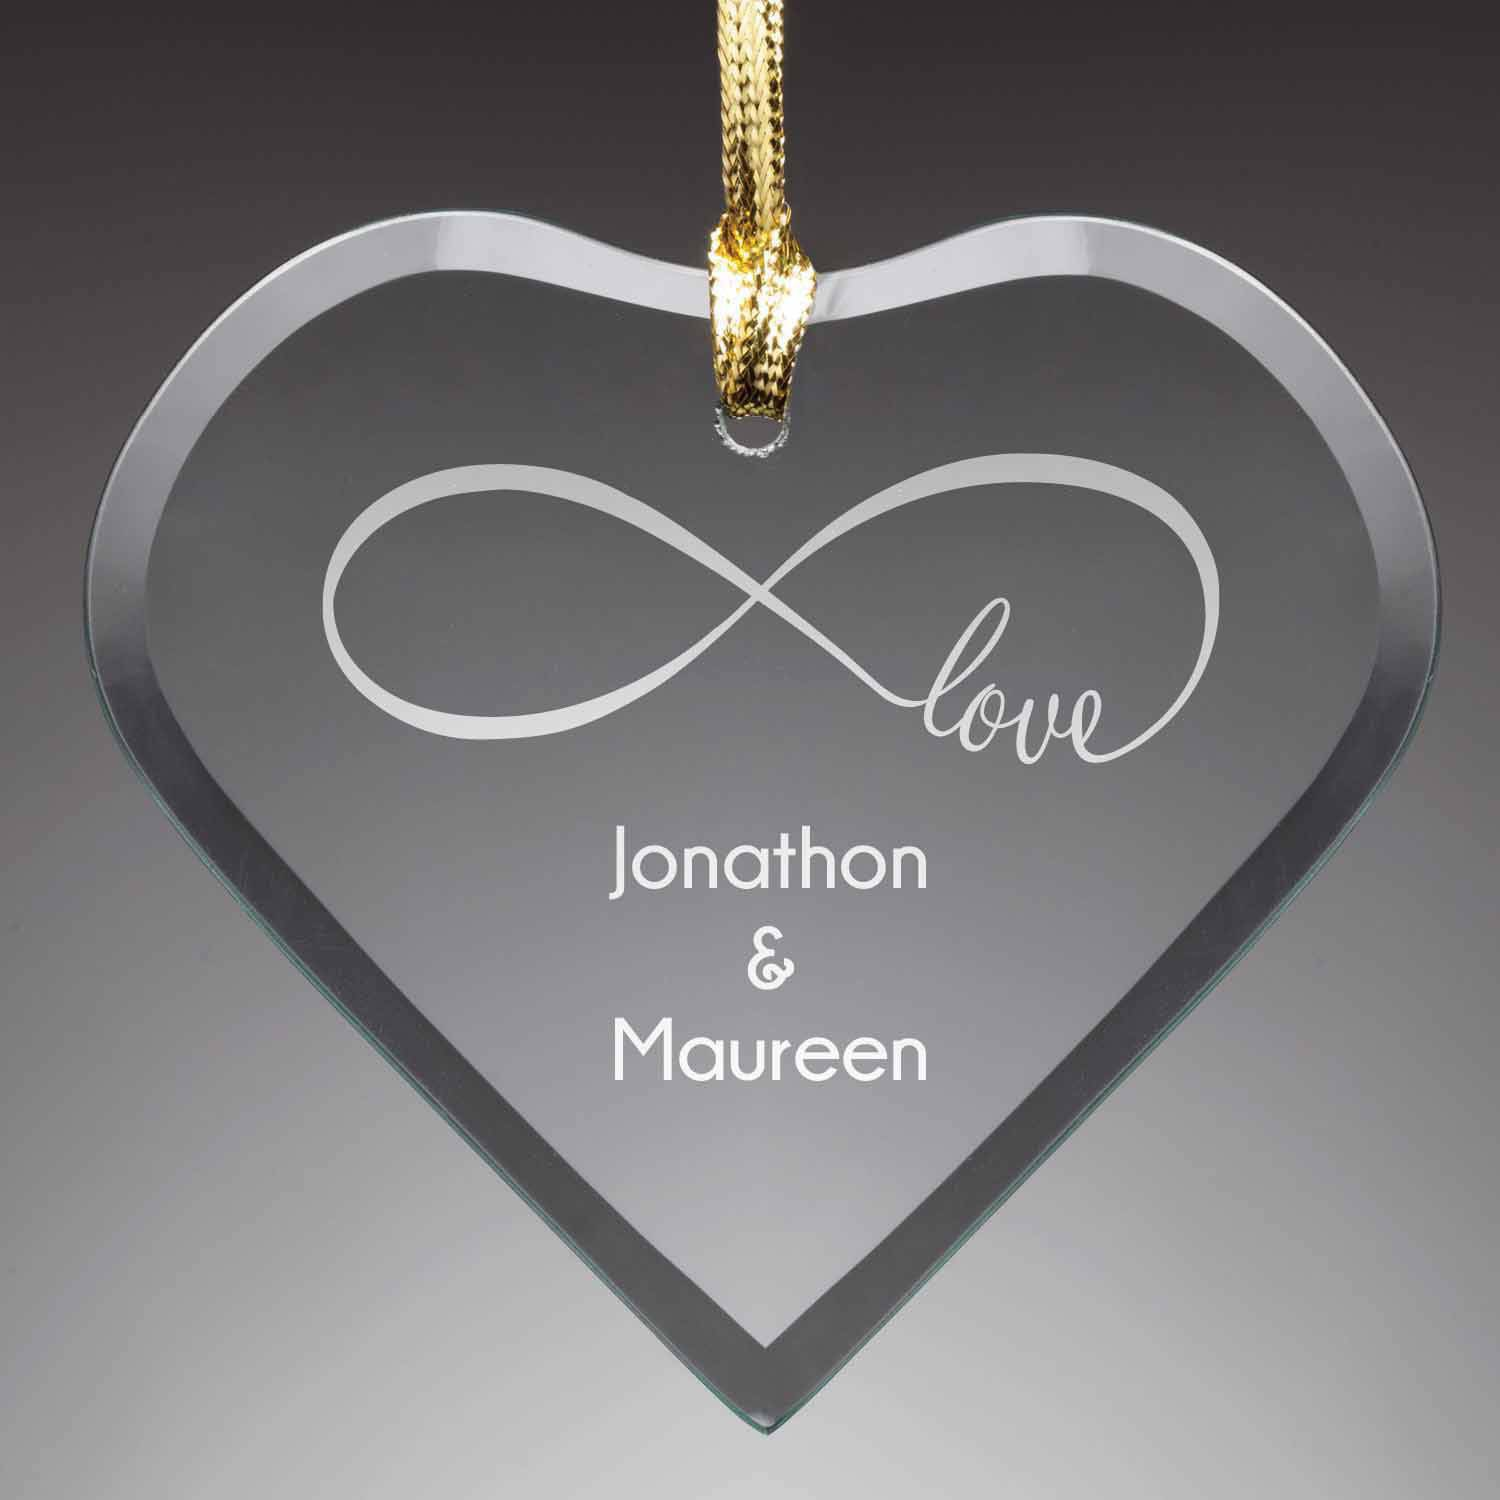 Personalized Glass Christmas Ornament - Our Love